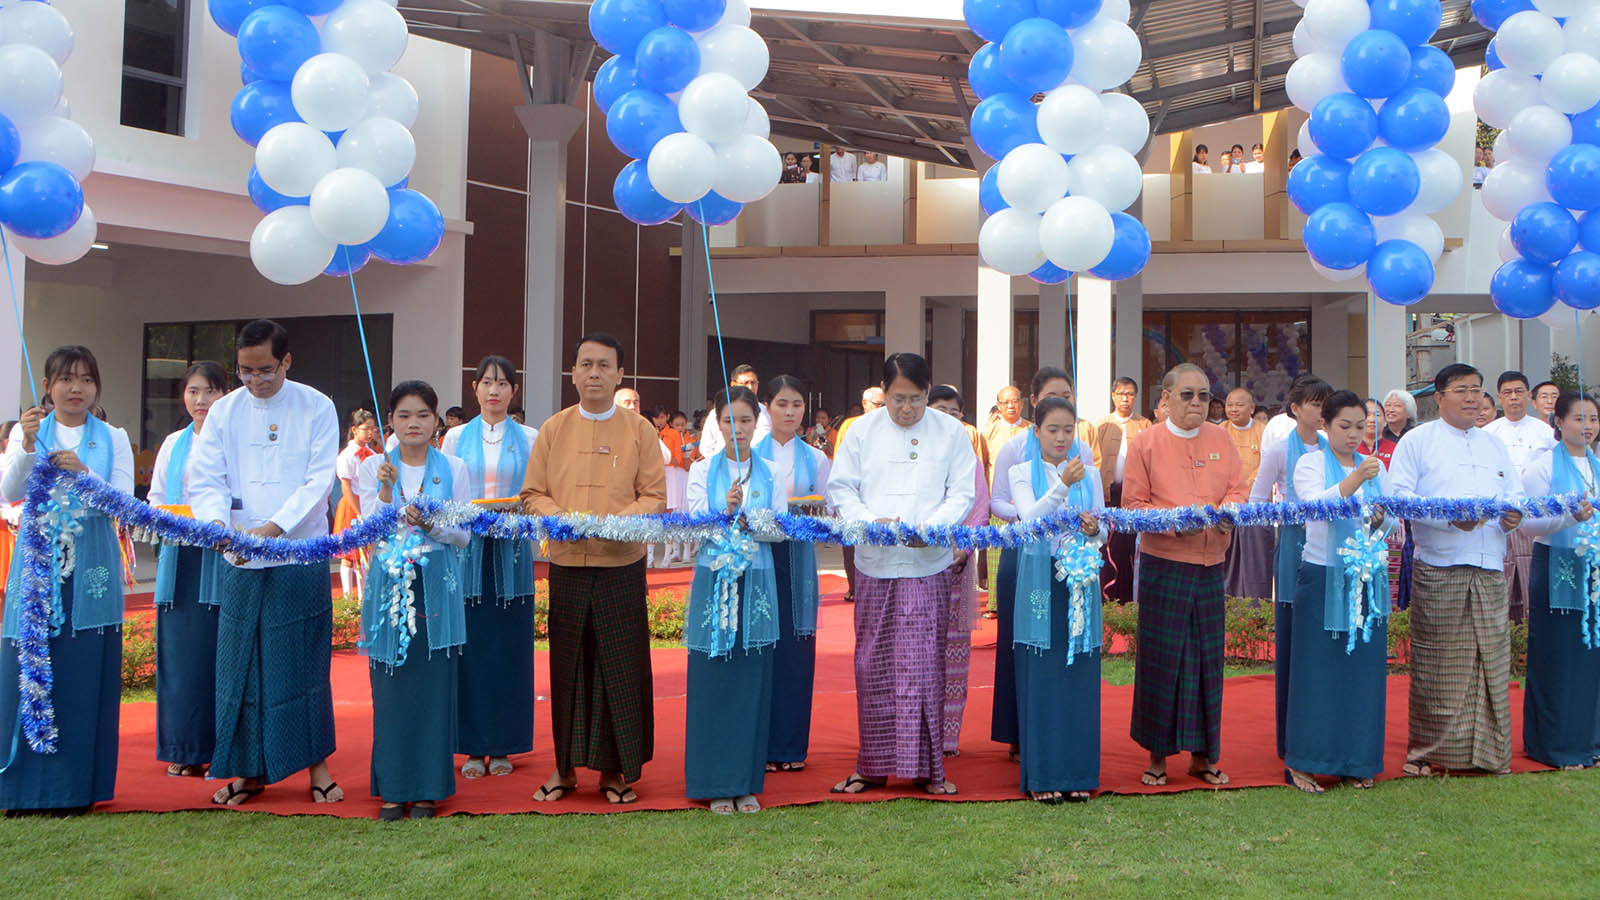 Union Minister Dr Pe Myint, Chief Minister U Phyo Min Thein, Deputy Minister U Aung Hla Tun, Speaker of Yangon Region Hluttaw U Tin Maung Tun and Minister of Rakhine Ethnic Affairs of the regional government U Zaw Aye Maung open the Community Centre in Yangon yesterday. Photo:MNA